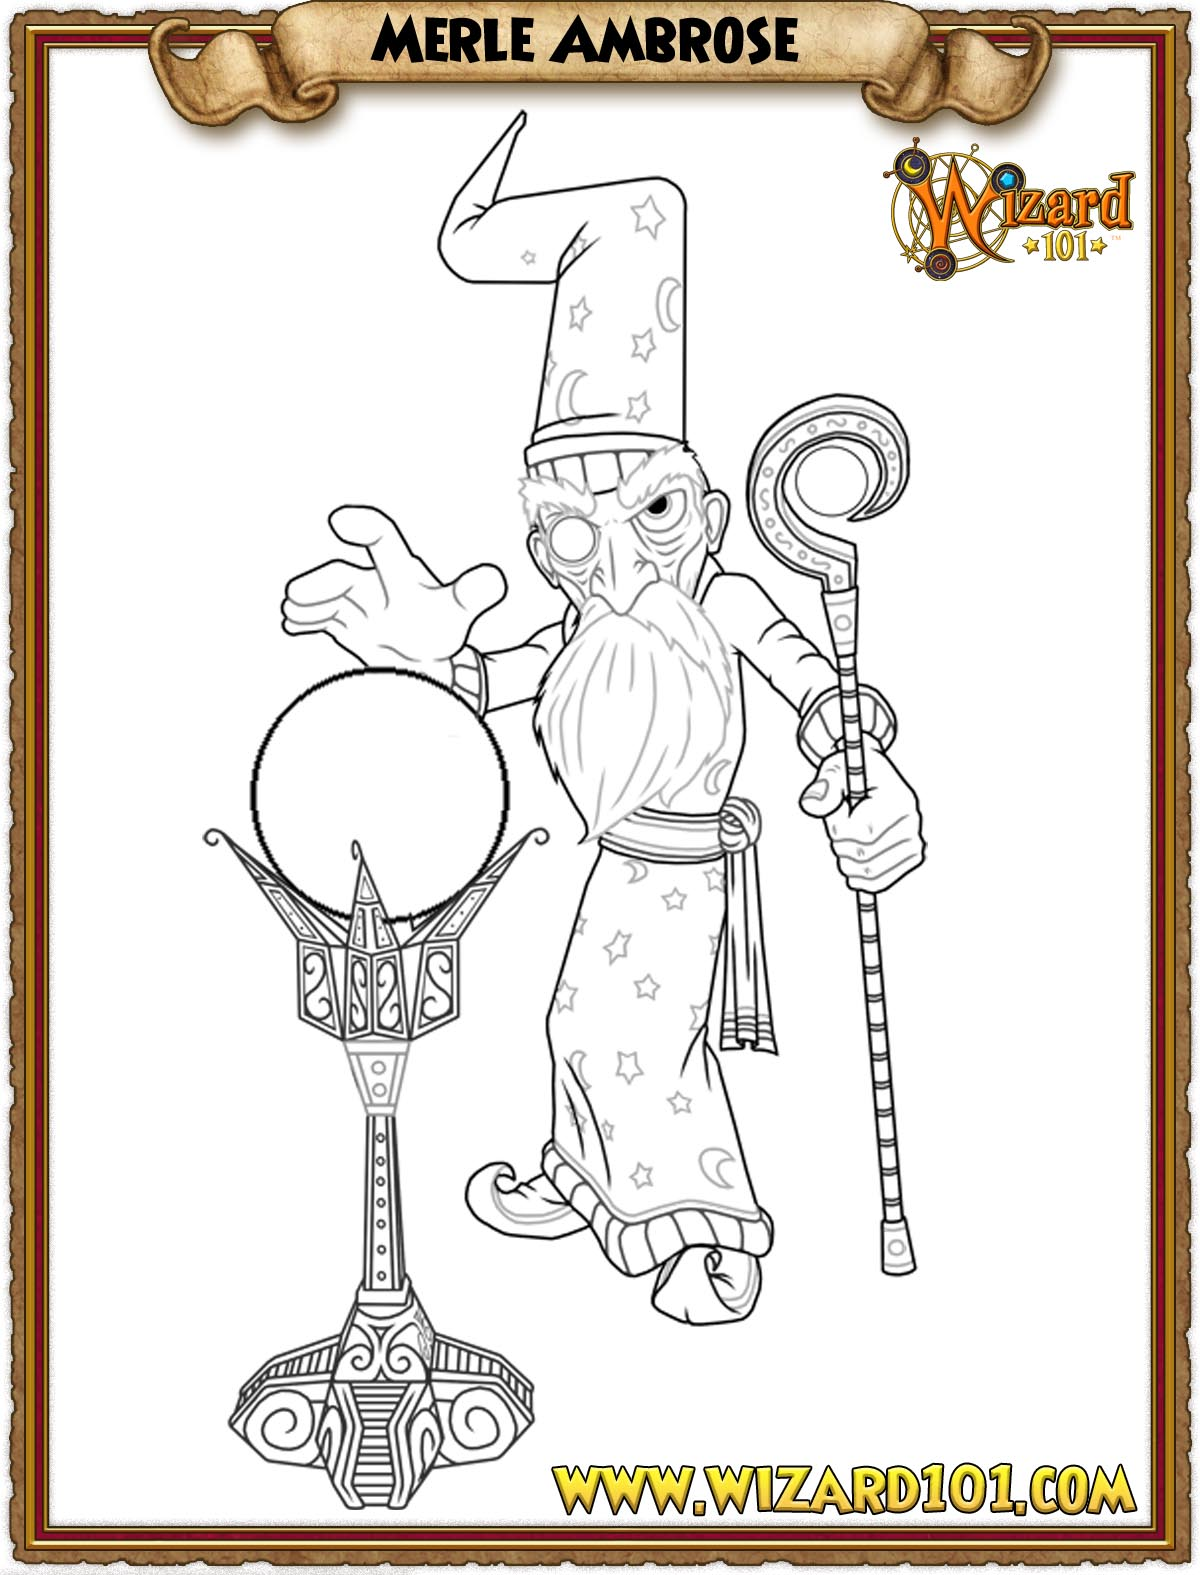 coloring pages wizard101 free online game rh wizard101 com Adult Coloring Pages Wizard101 Pets Coloring Pages